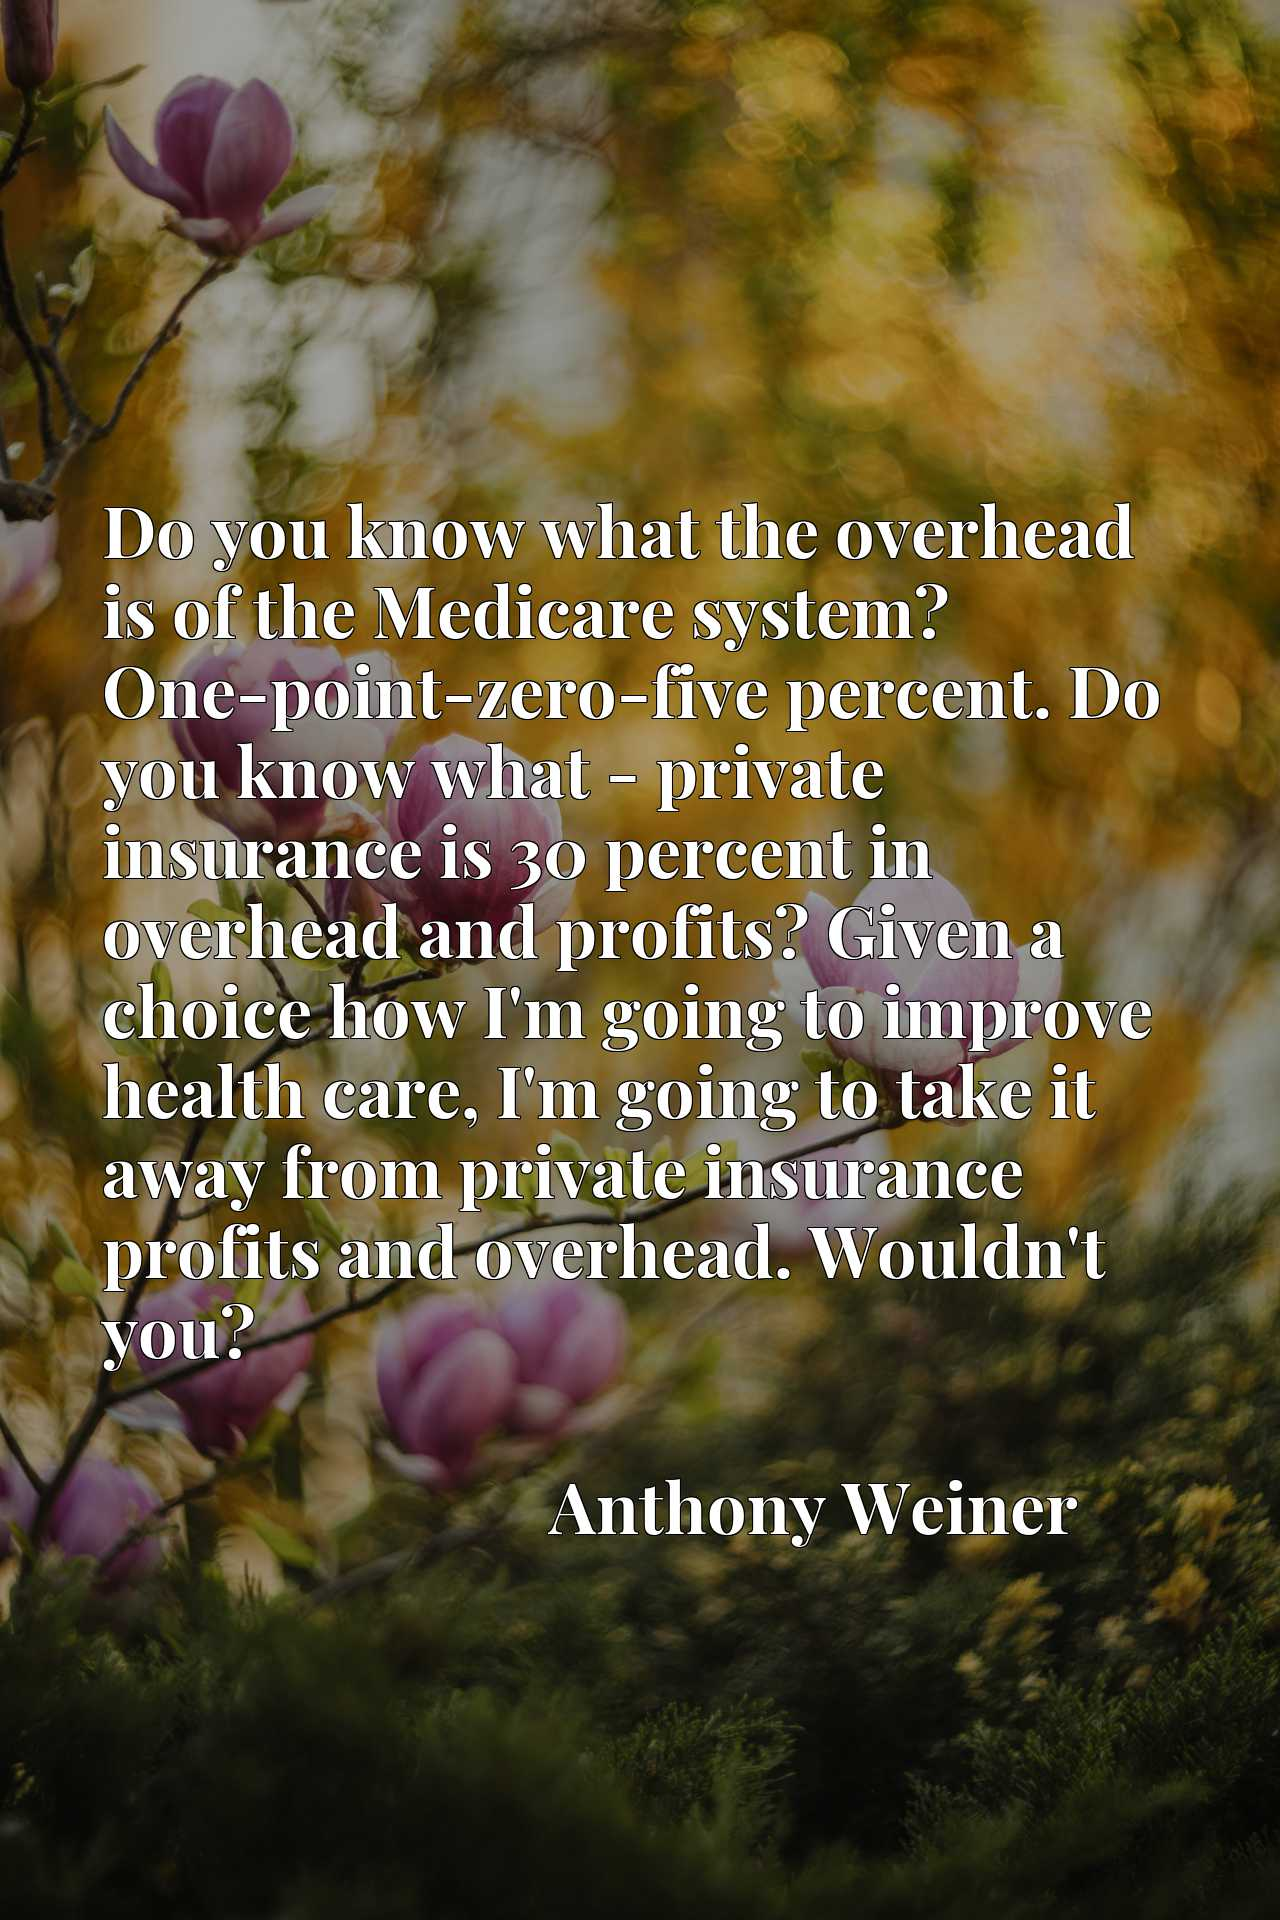 Do you know what the overhead is of the Medicare system? One-point-zero-five percent. Do you know what - private insurance is 30 percent in overhead and profits? Given a choice how I'm going to improve health care, I'm going to take it away from private insurance profits and overhead. Wouldn't you?